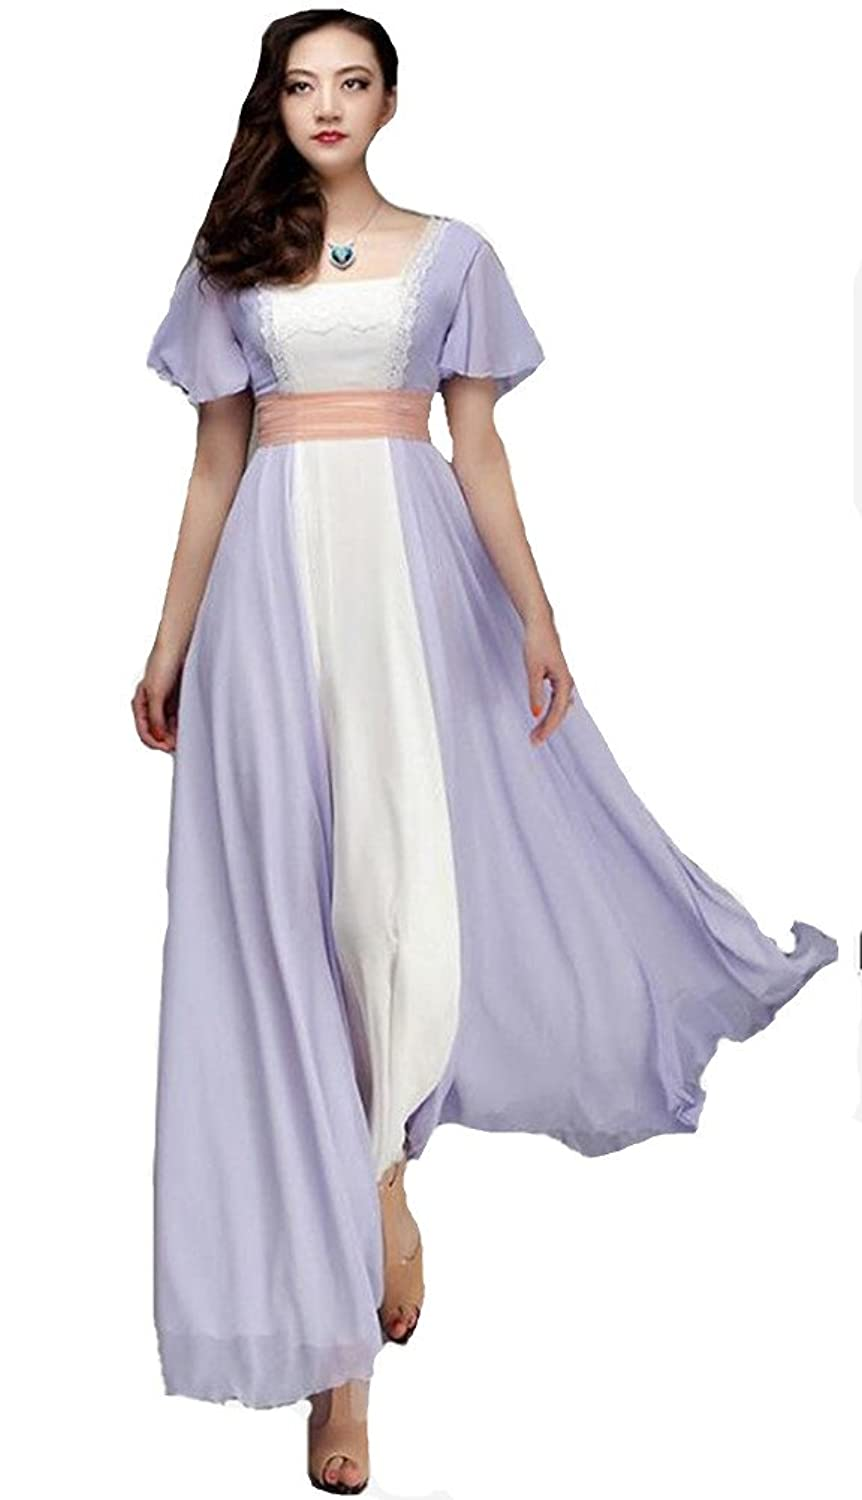 1900s, 1910s, WW1, Titanic Costumes Formaldresses Titanic Rose Chiffon Celebrity Dress Evening Dress Prom Gown Maxi Dress $97.00 AT vintagedancer.com